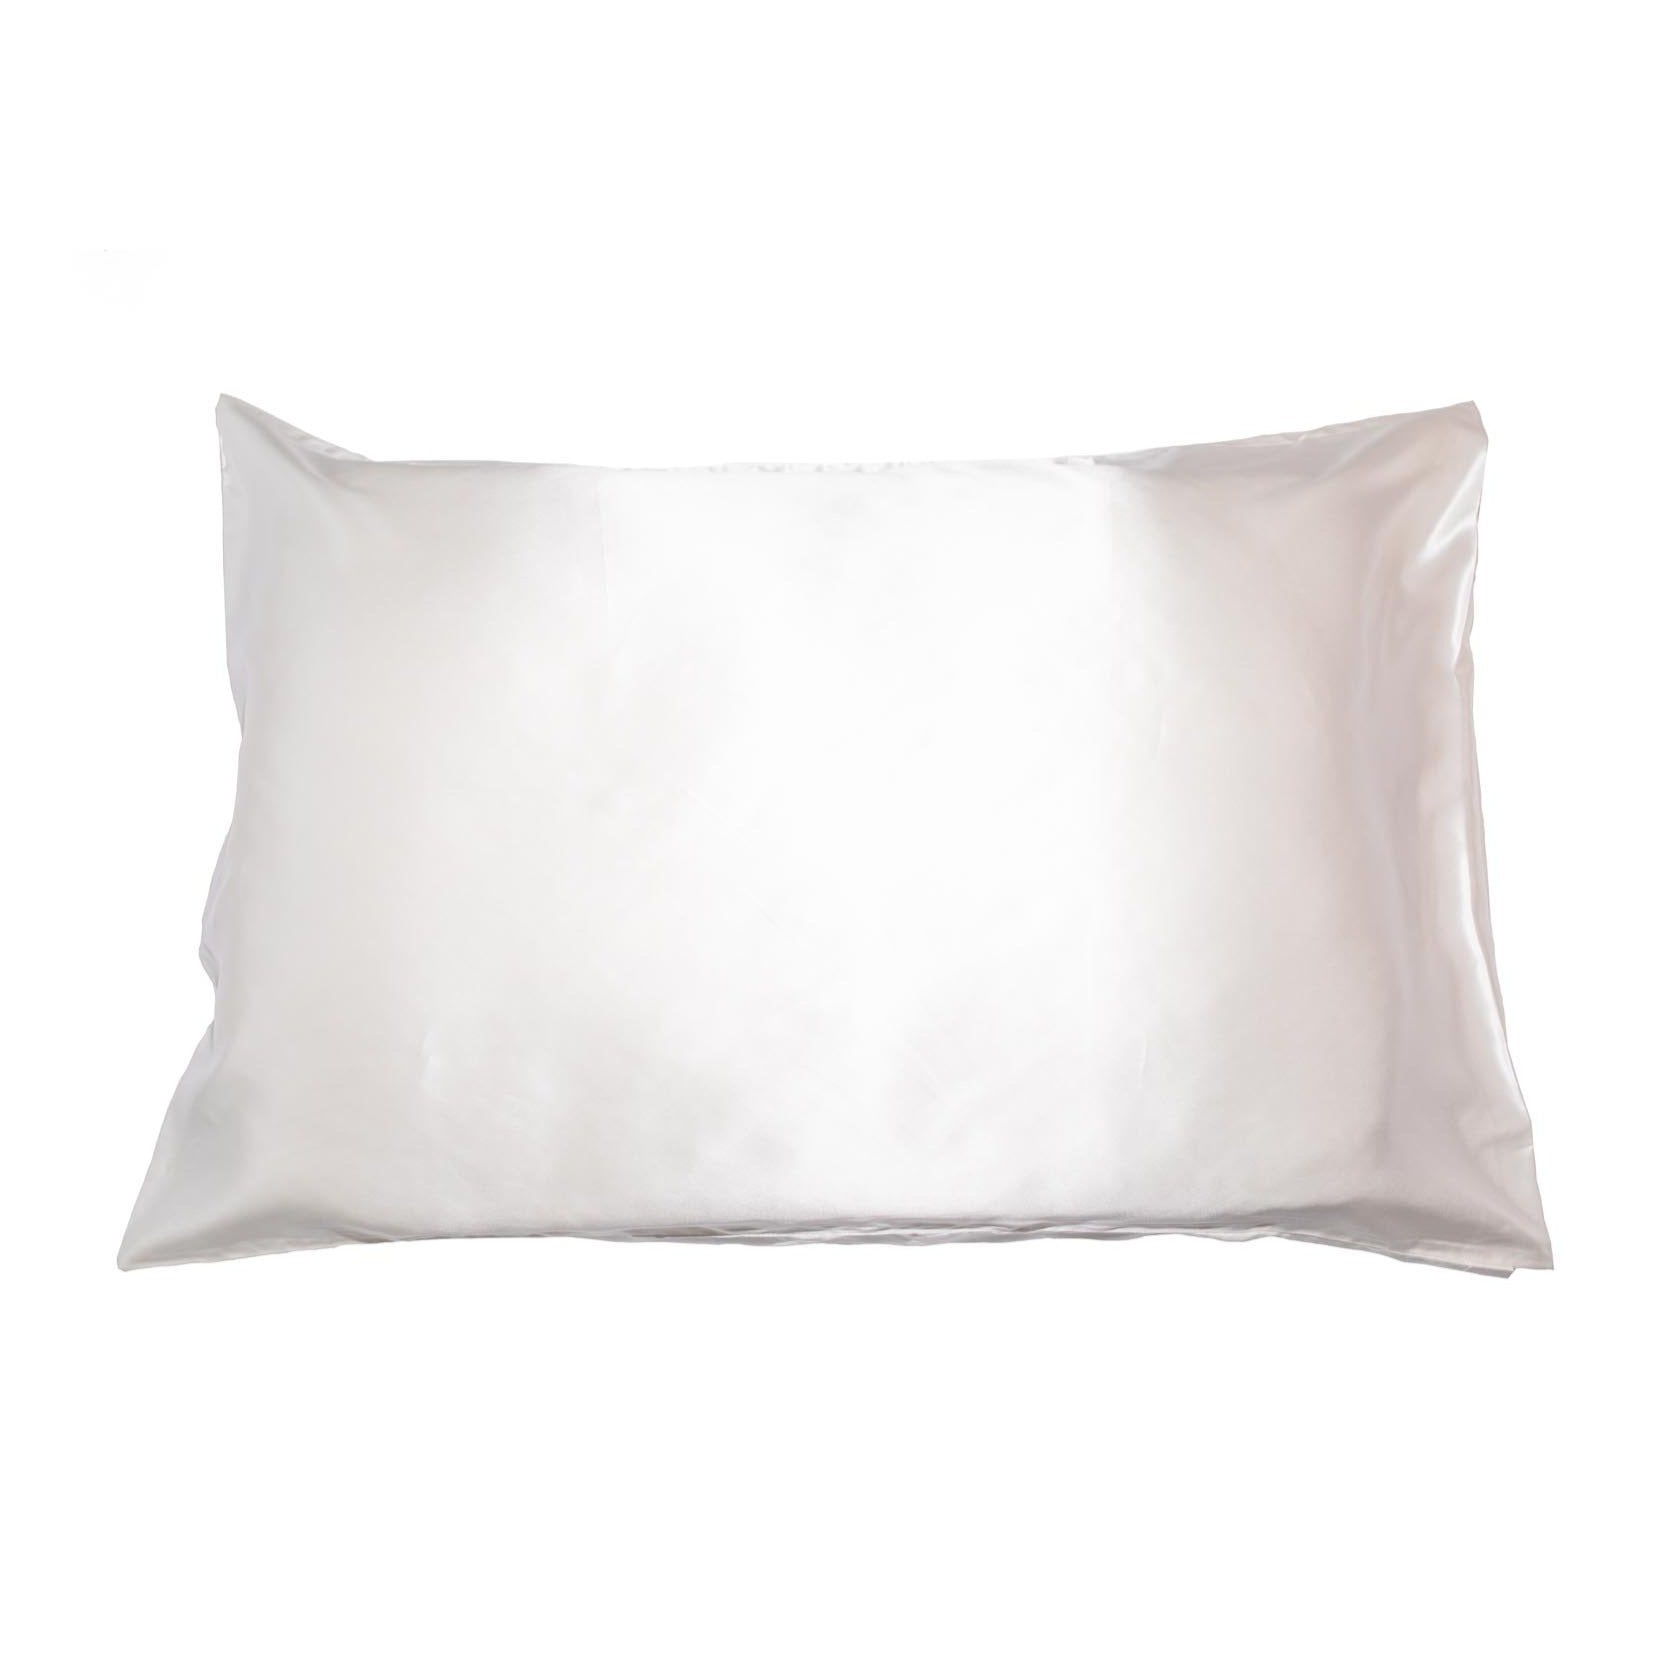 Zove Beauty High Quality Silk Pillowcase Authentic Genuine